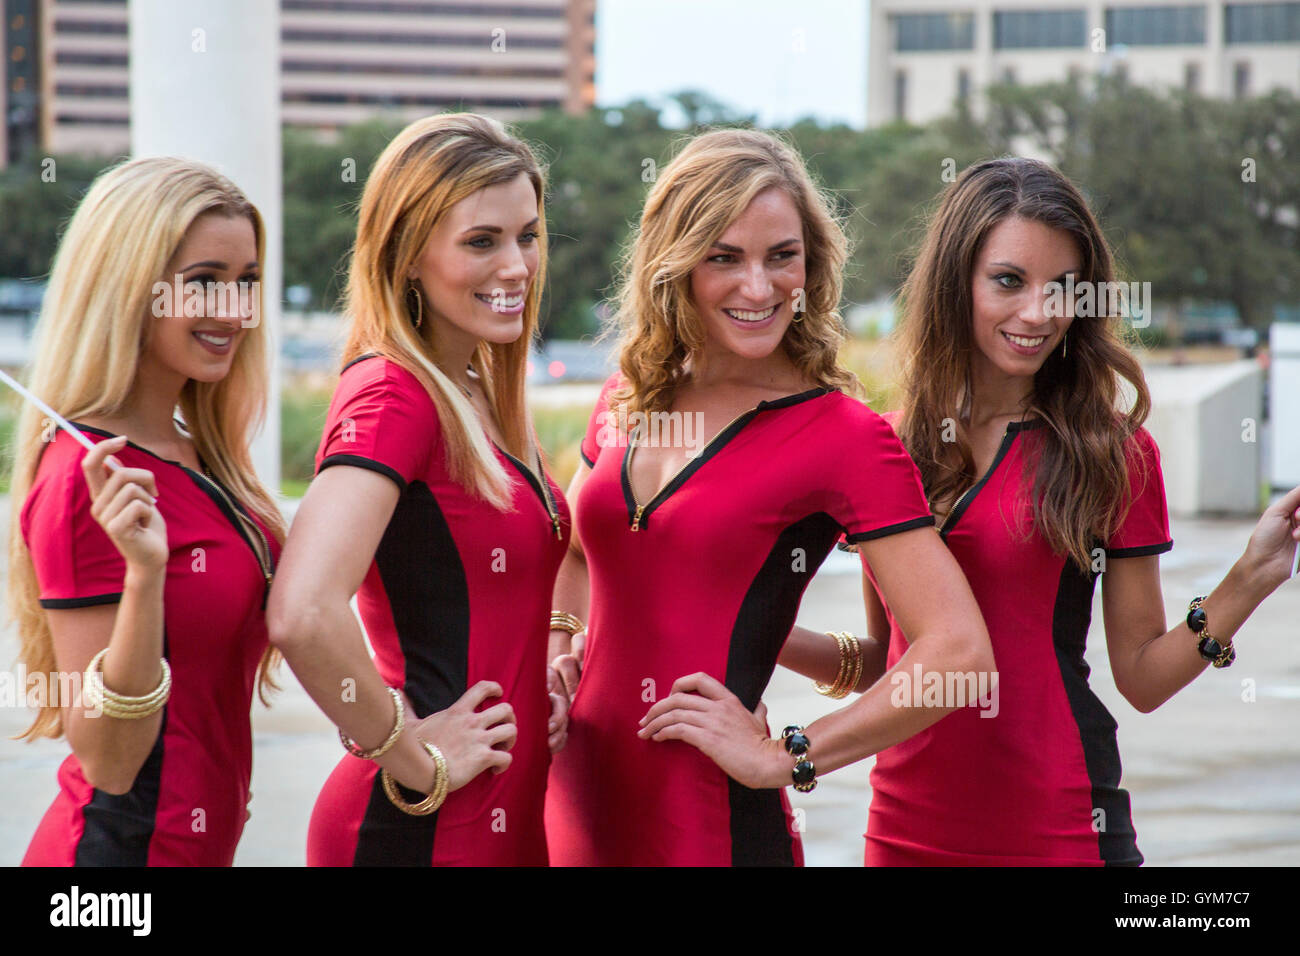 Circuit of the Americas Girls at an event in Austin, Texas Stock Photo